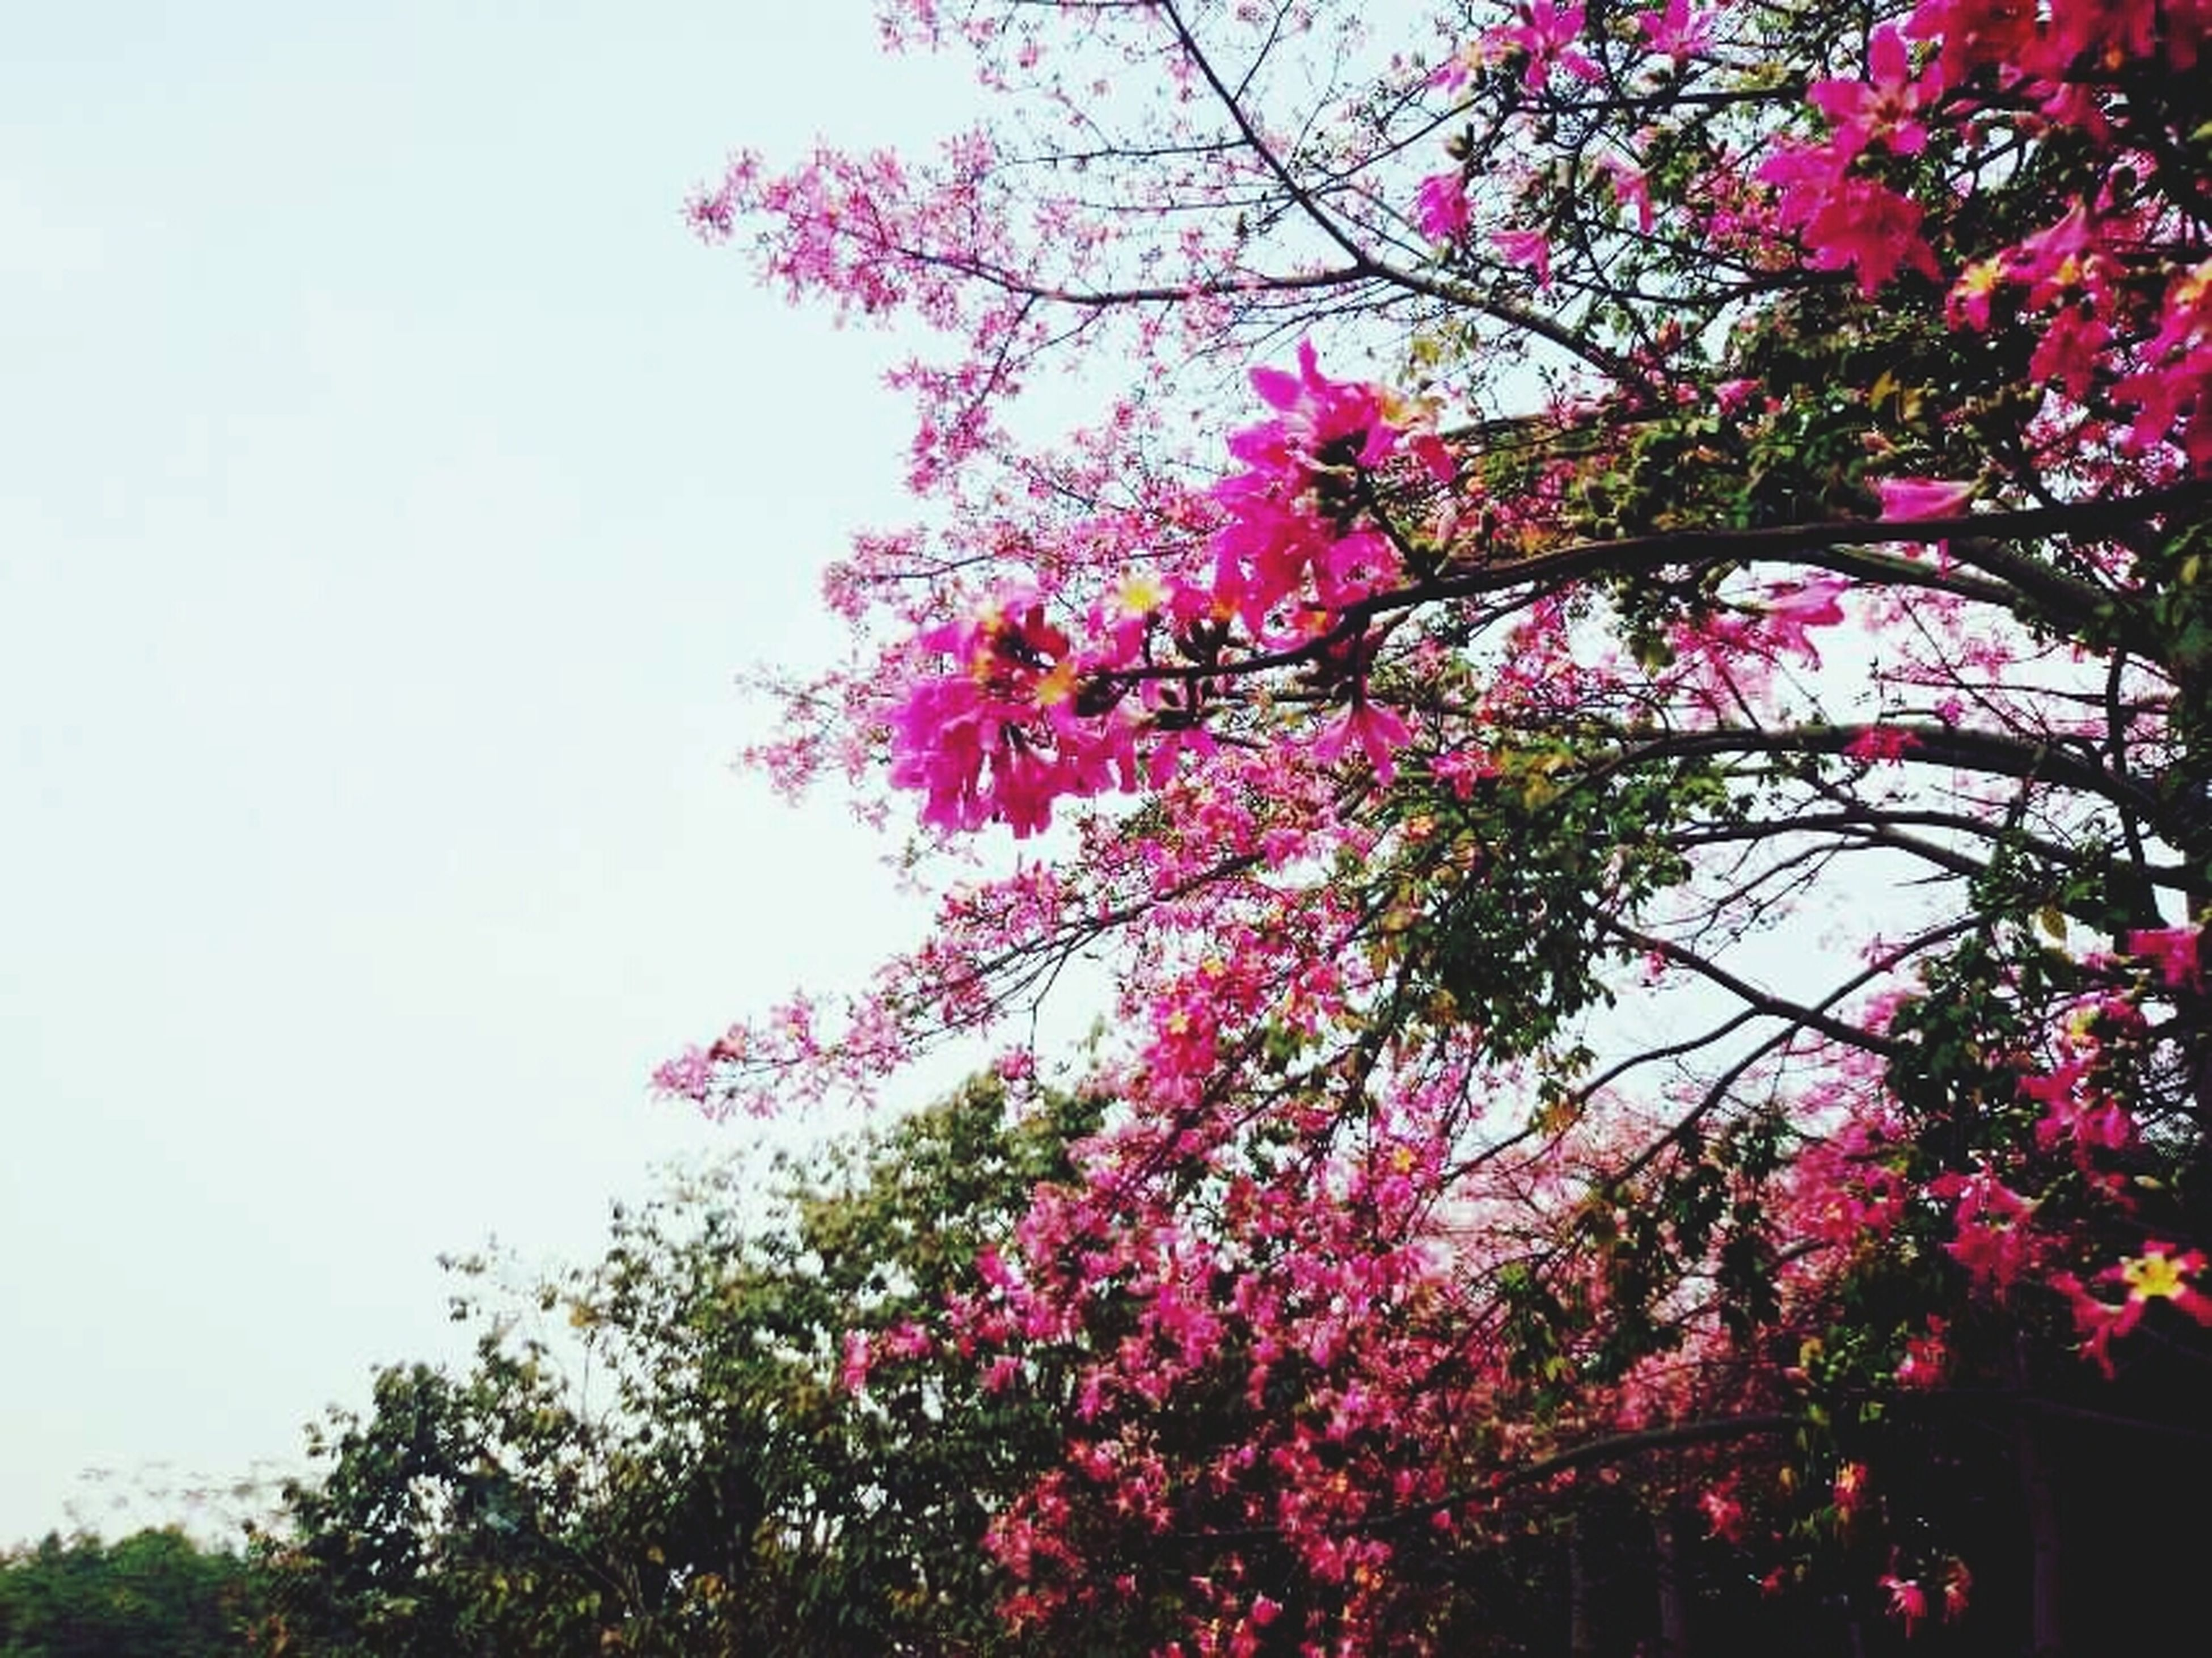 flower, tree, growth, freshness, pink color, beauty in nature, low angle view, branch, fragility, nature, blossom, blooming, in bloom, pink, sky, springtime, clear sky, petal, day, outdoors